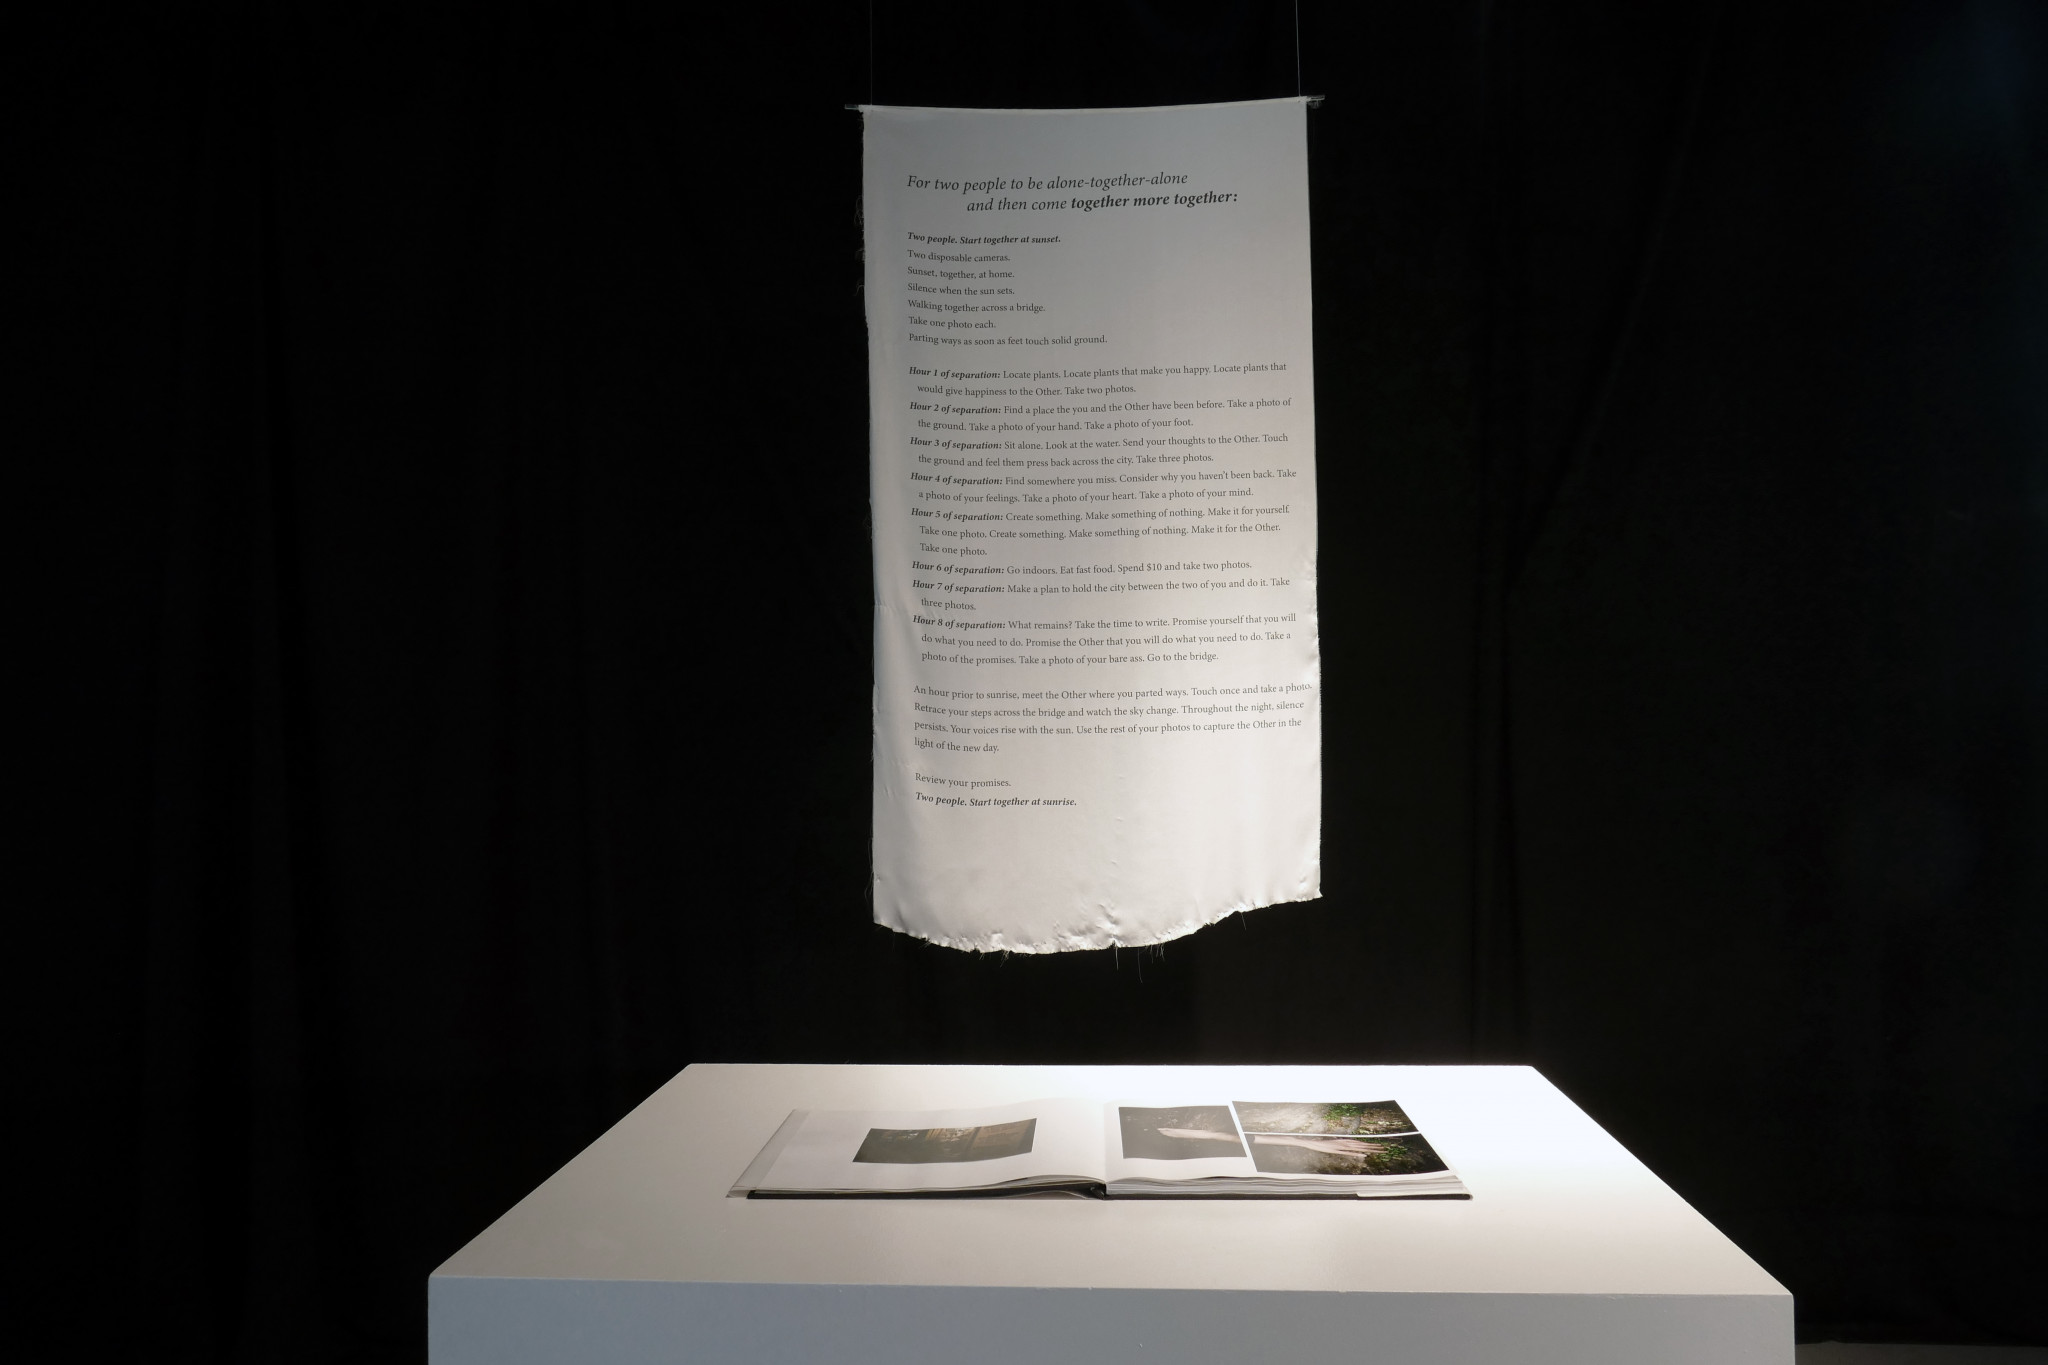 White scroll with text hangs above a white table with open photo book